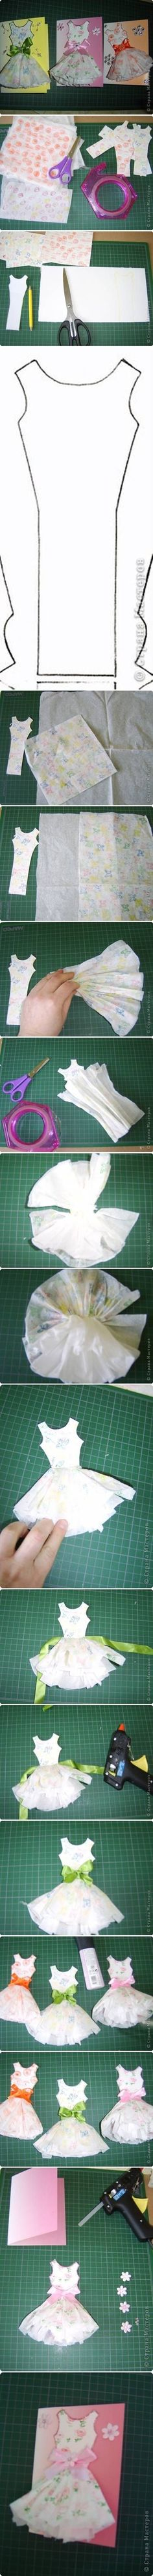 DIY Paper Dress Card Topper dress paper diy easy crafts: